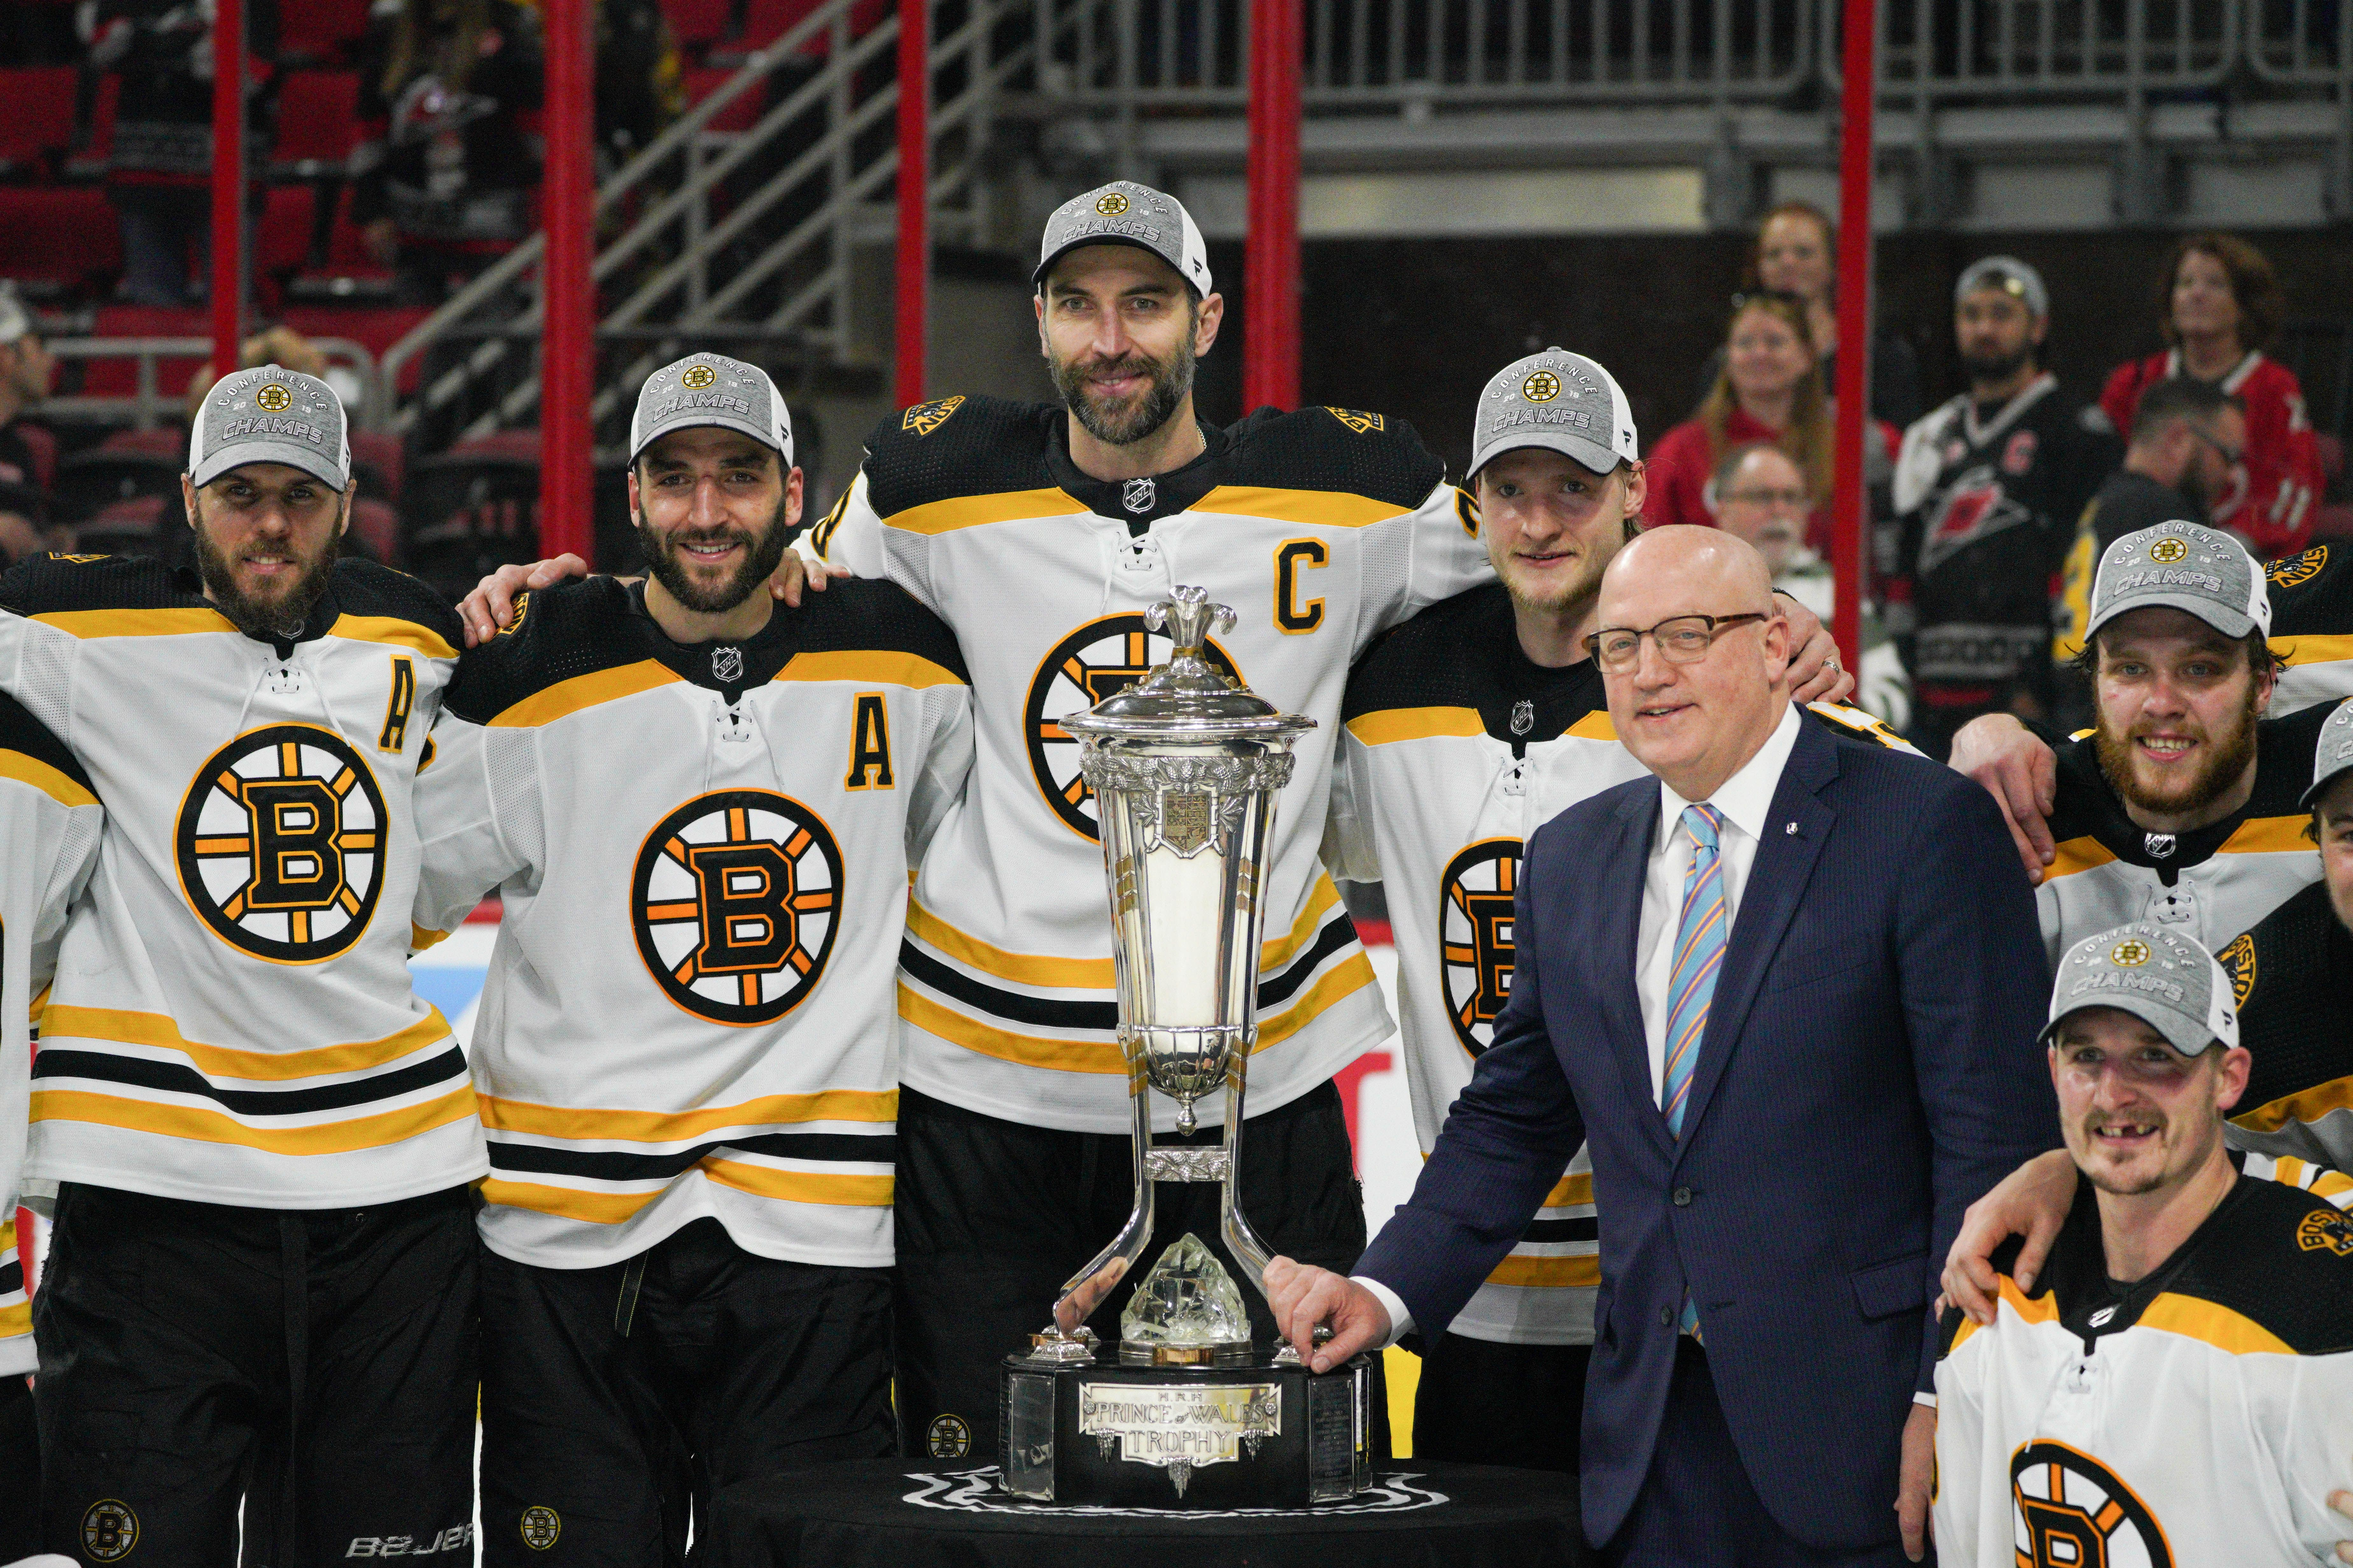 Bruins after winning the Eastern Conference Finals